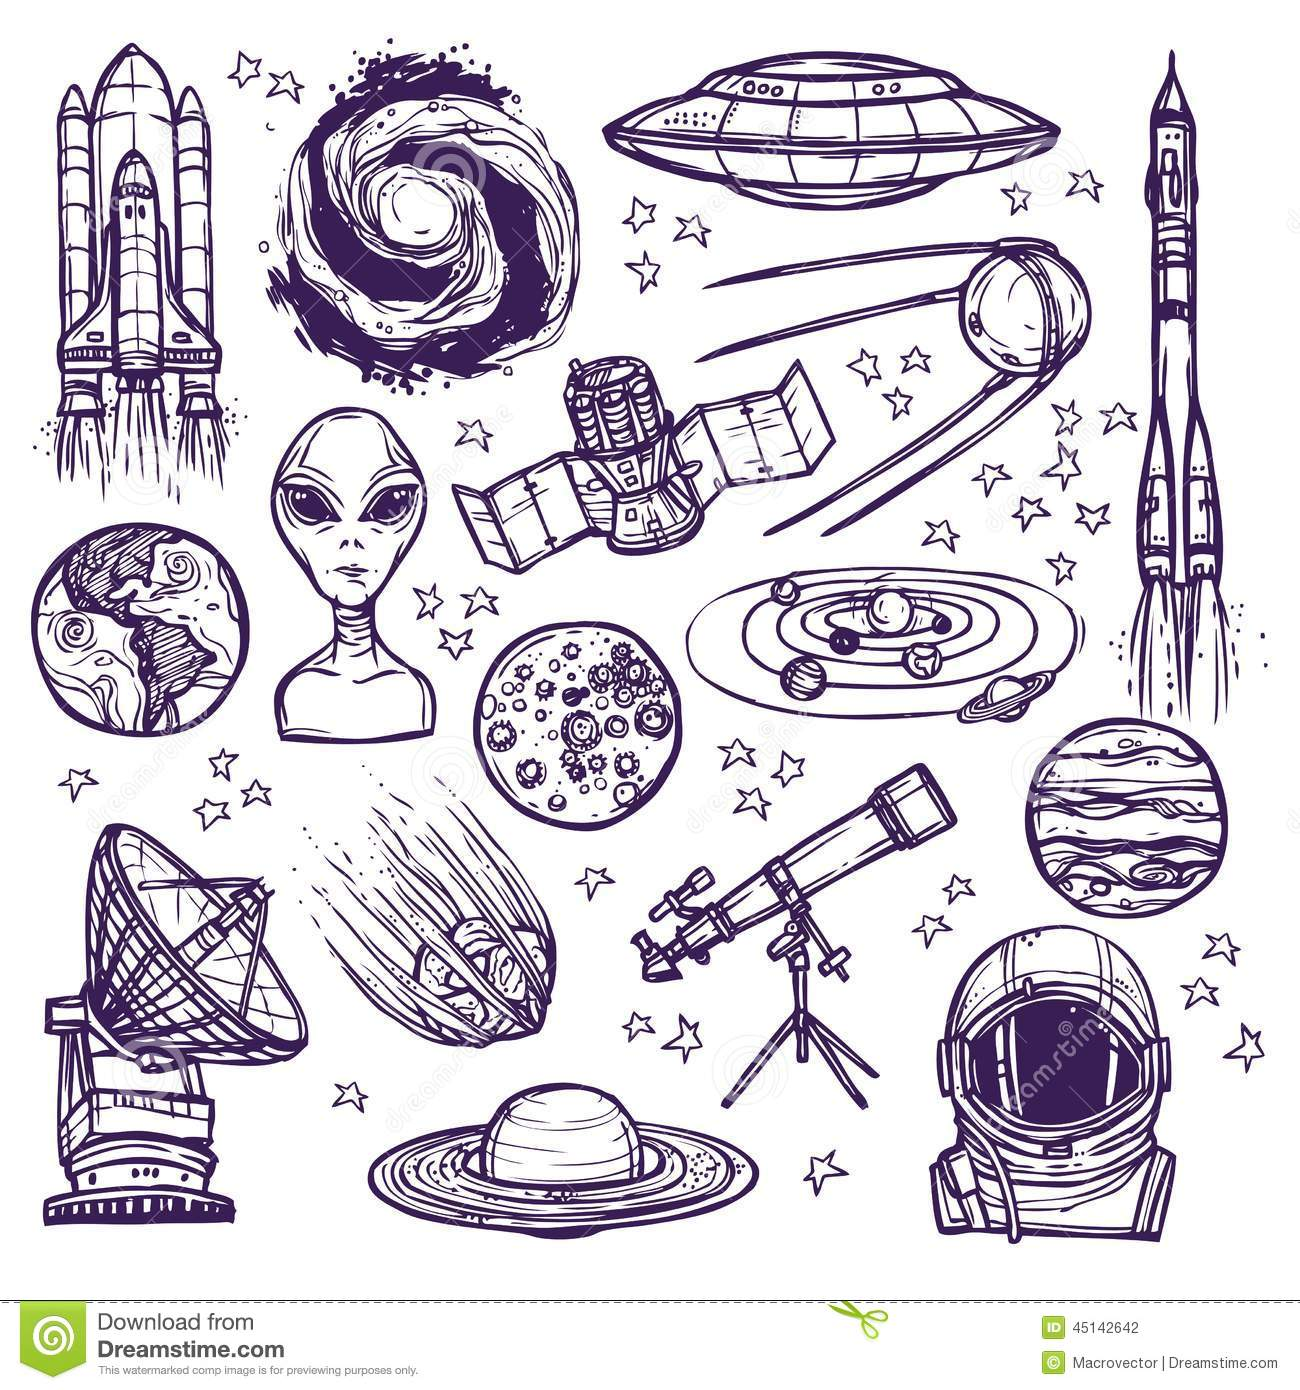 astronomy doodles - photo #45